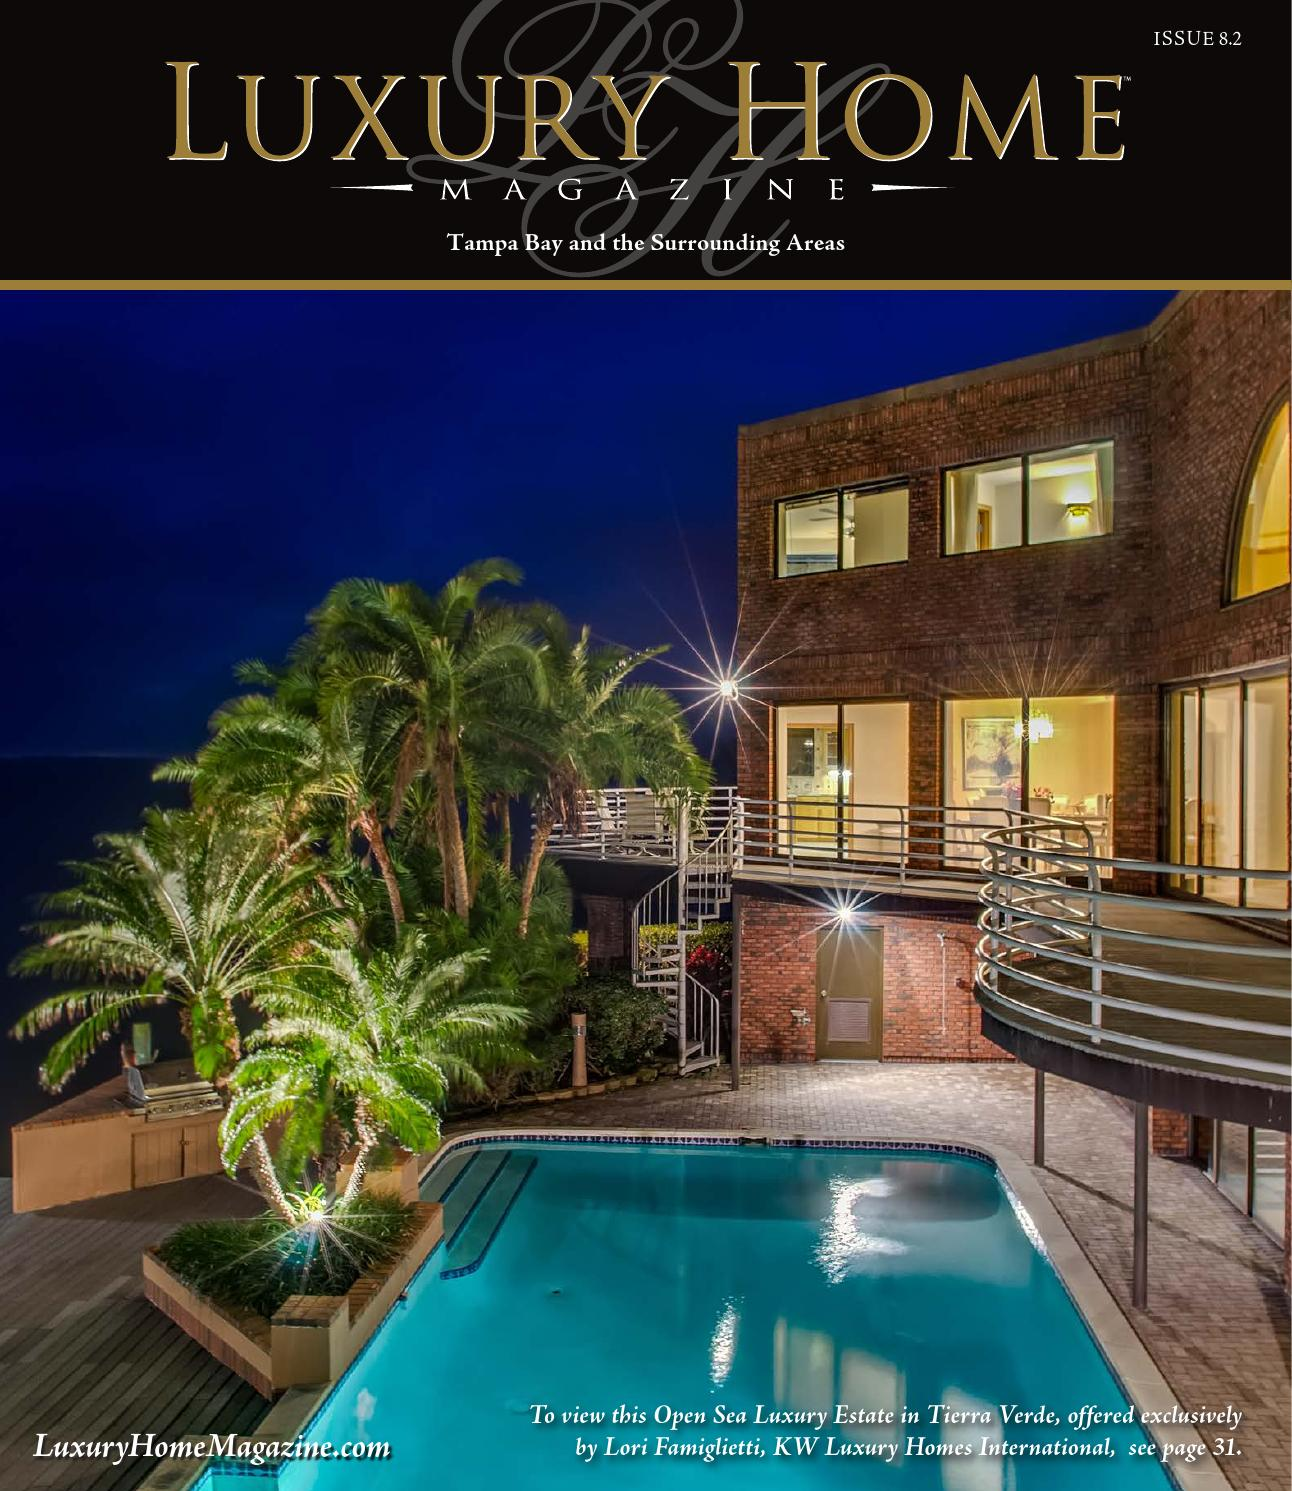 An Elegant And Sustainable Florida Home With Fantastic Views: Luxury Home Magazine Tampa Issue 8.2 By Luxury Home